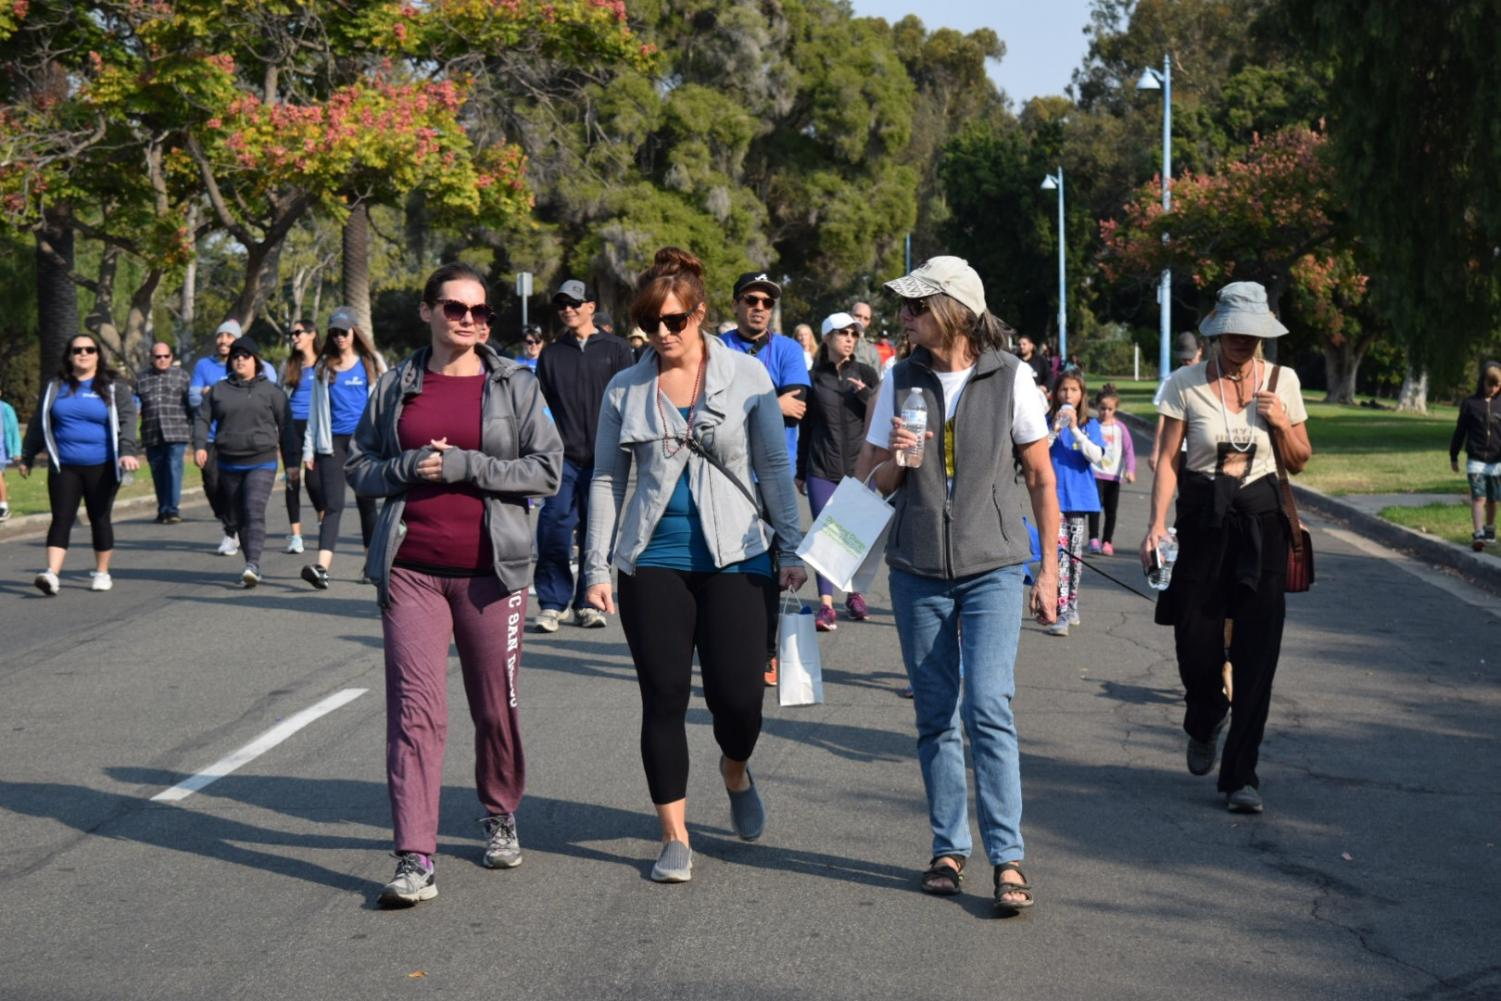 Human Geography teacher Laura Lowery attends the suicide walk at Balboa Park on Nov. 11th. She participated in the walk with her friends in remembrance of a lost loved one.